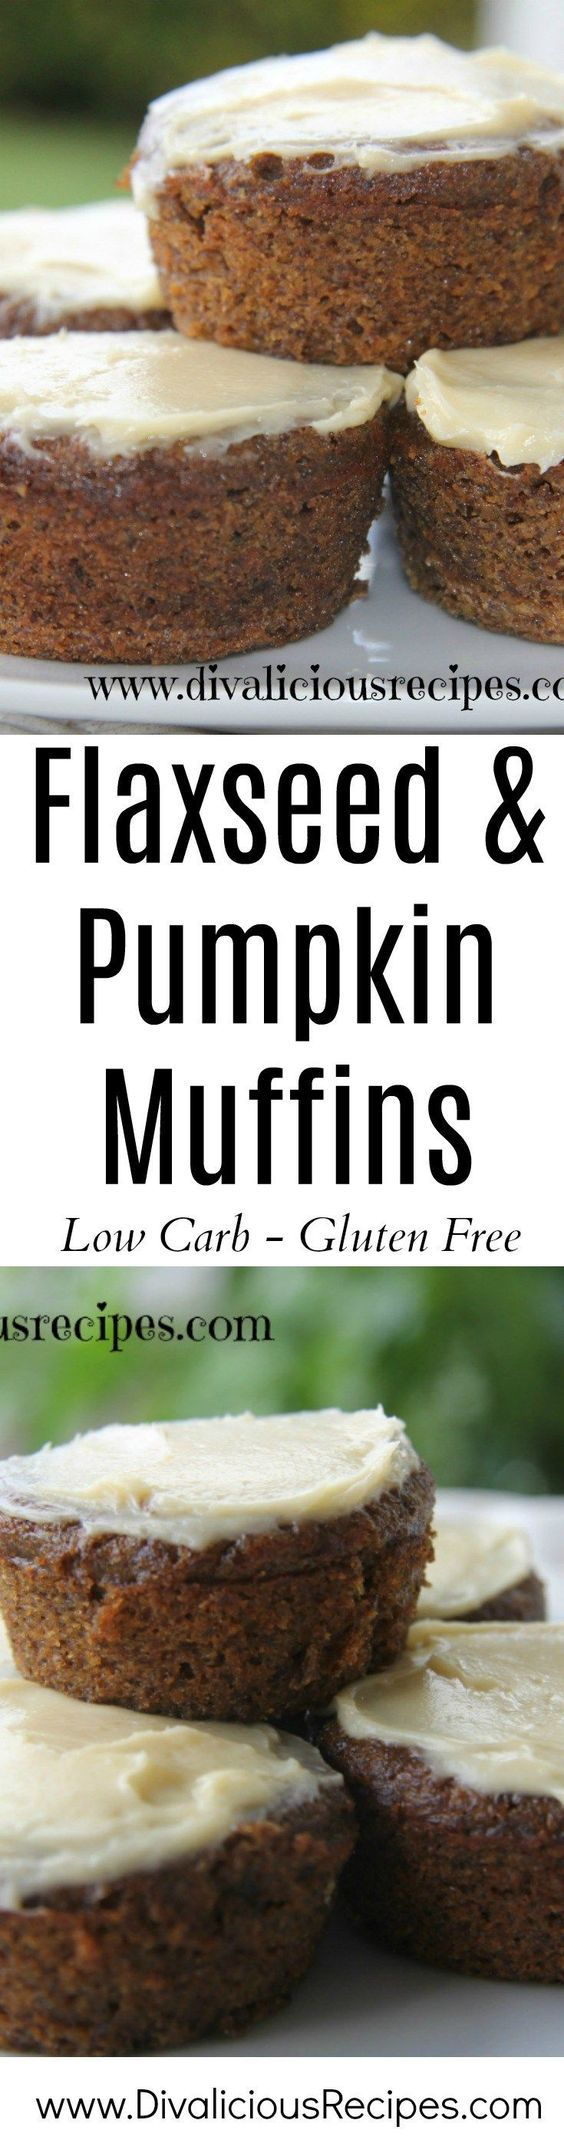 Flaxseed pumpkin muffins make a healthy breakfast or a snack on the go. Low carb and gluten free these are a great way to start the day.